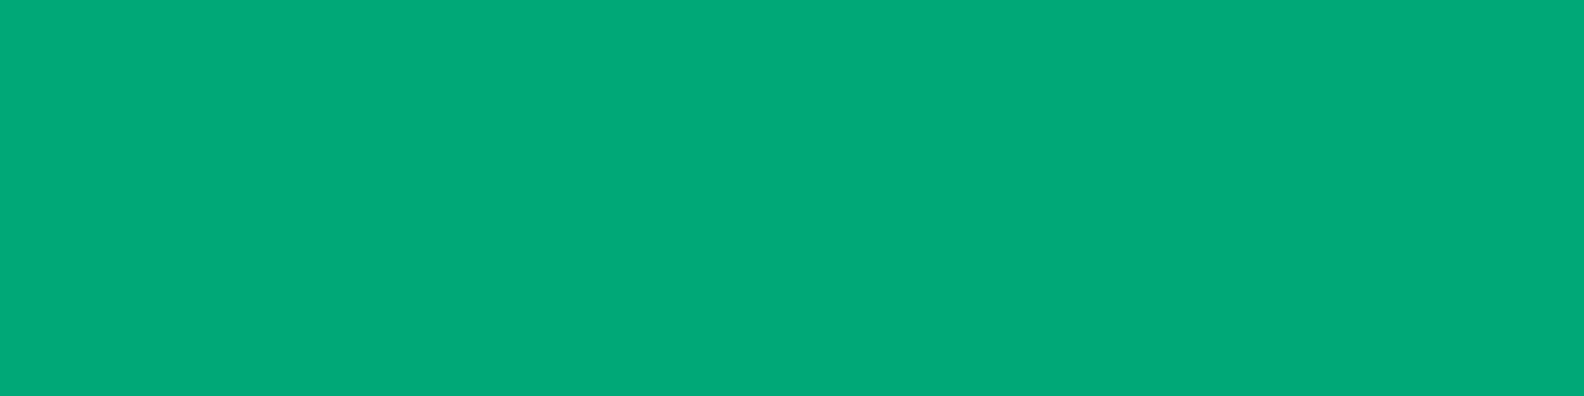 1584x396 Green Munsell Solid Color Background